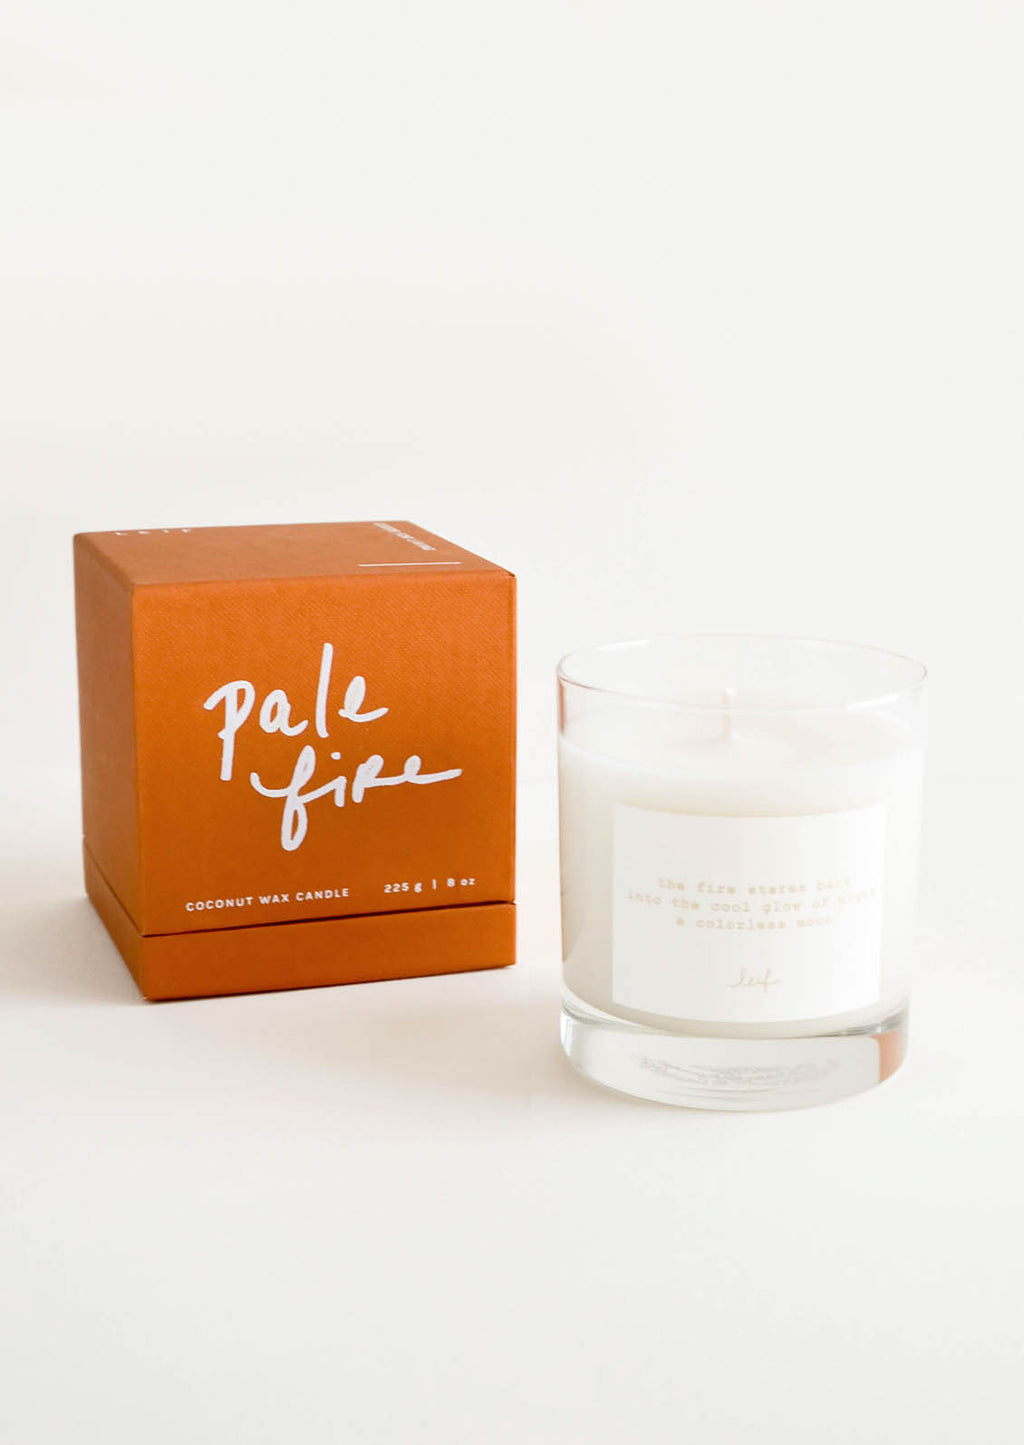 "Pale Fire: A glass candle with a white label sits next to a rust colored box reading ""pale fire"" in white cursive text."